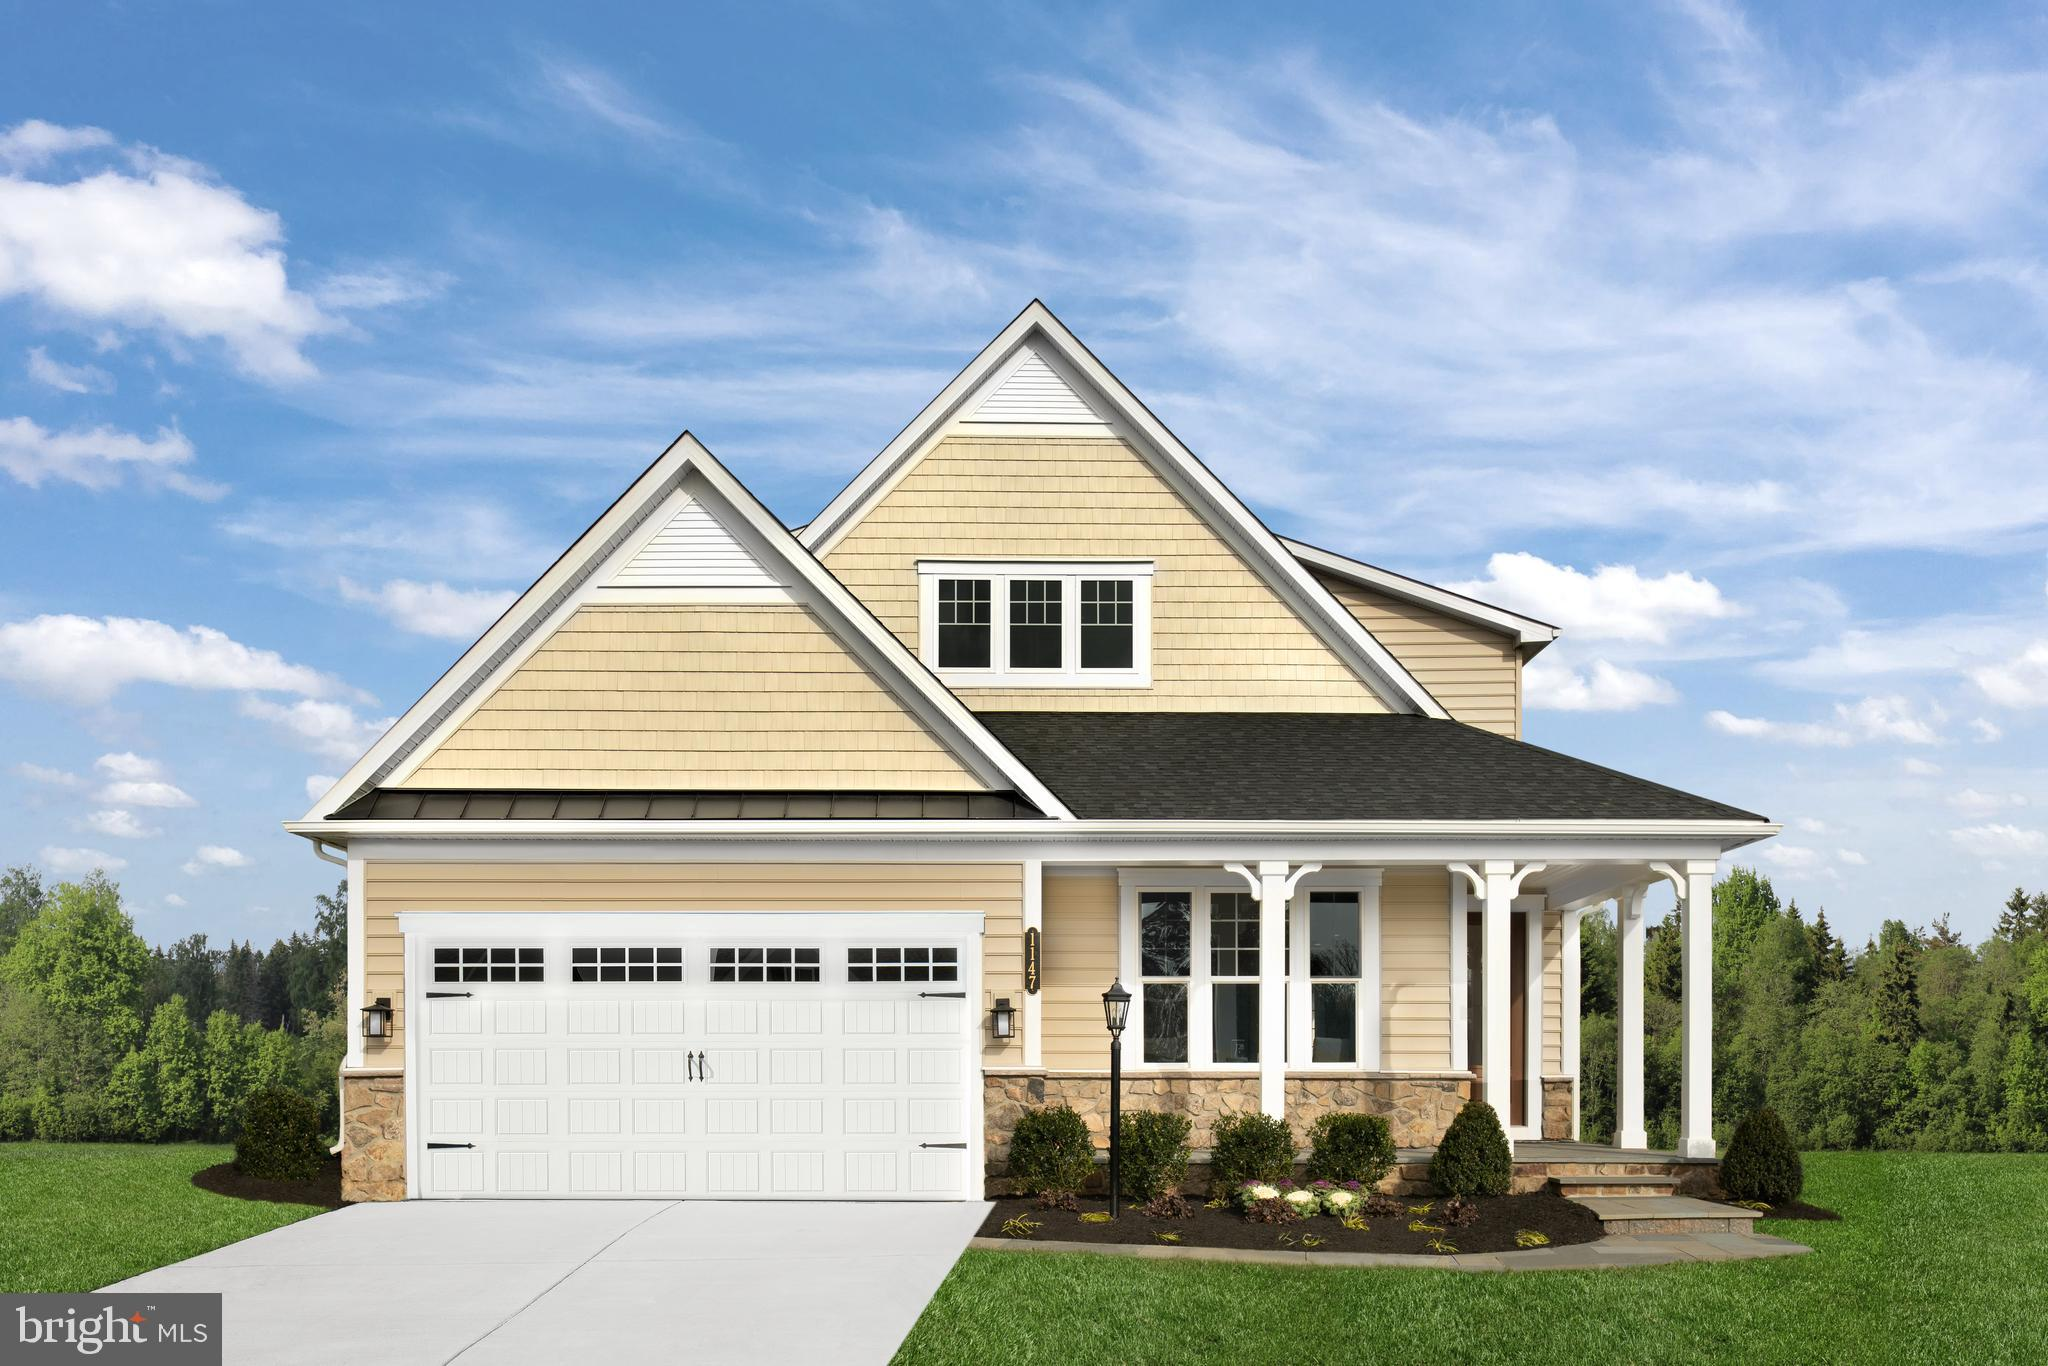 Welcome to the Clarkson at the Woodlands, West Chester's premier 55+ community of new single homes in a spectacular gated estate setting. The Clarkson offers 3-5 bedrooms balancing traditional living with an open, two level concept. Upon entering from your bluestone front porch, you will find a generously sized guest bedroom, which also can be used as a study. The gourmet kitchen features an 8' island which opens to a large dining area and great room with a 10' included tray ceiling. The main level primary suite offers 2 walk-in closets and spa-like bath. The second floor adds a private living space for family or friends who visit!  The loft, large bedroom and full bath offer privacy. You will be amazed by our included luxury features, like 5' hardwood floors, quartz countertops, cushion-close cabinetry, smart home features, arrival center, and so much more. Enjoy a lock and leave lifestyle featuring full lawn and snow care as well as amenities such as clubhouse with pool, sun and grilling decks, social and office spaces, gym & yoga rooms, tennis, bocce and pickleball courts to name a few! Located within The Greystone community are nearly 7 miles of walking trails and 163 acres of open space, a bucolic setting, yet just minutes from the excitement of first-class dining and shopping in the West Chester Borough.  In addition to the Clarkson, The Woodlands offers the Albright, the Bennington, and the Davenport floor plans. Buyers enjoy a choice of available homesites.  Photos are representative.